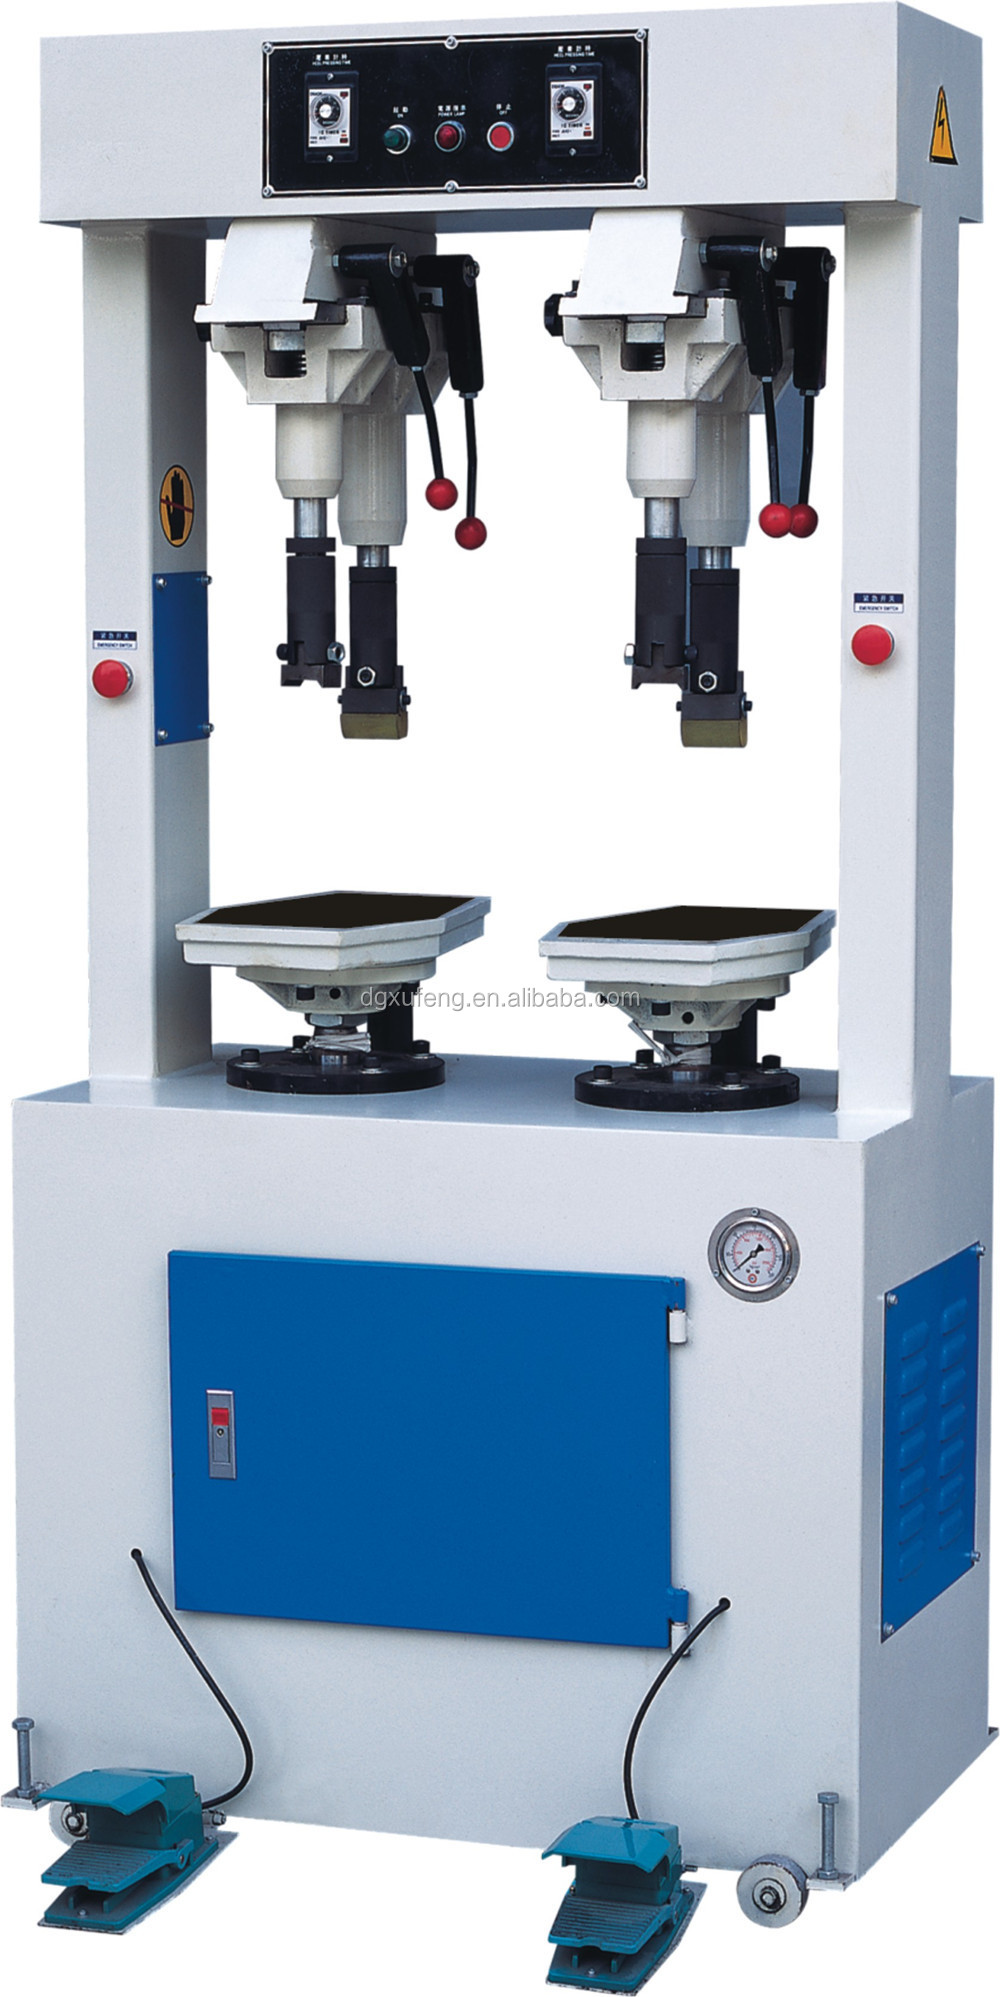 Hydraulic Shoe Sole Pressing Press Machine For Sale Buy